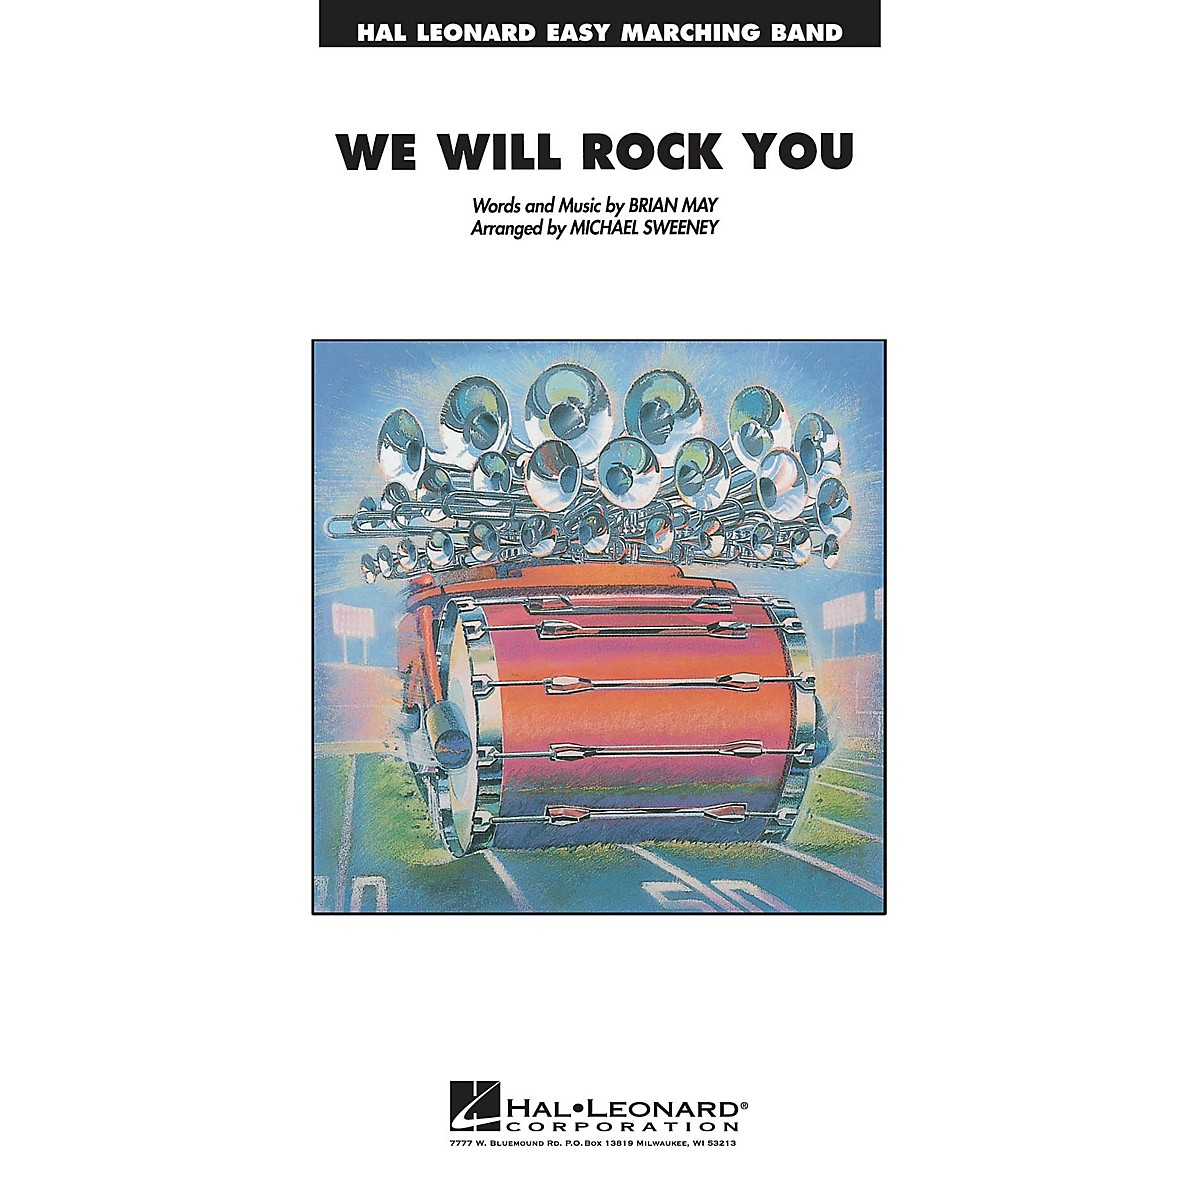 Hal Leonard We Will Rock You Marching Band Level 2-3 Arranged by Michael Sweeney